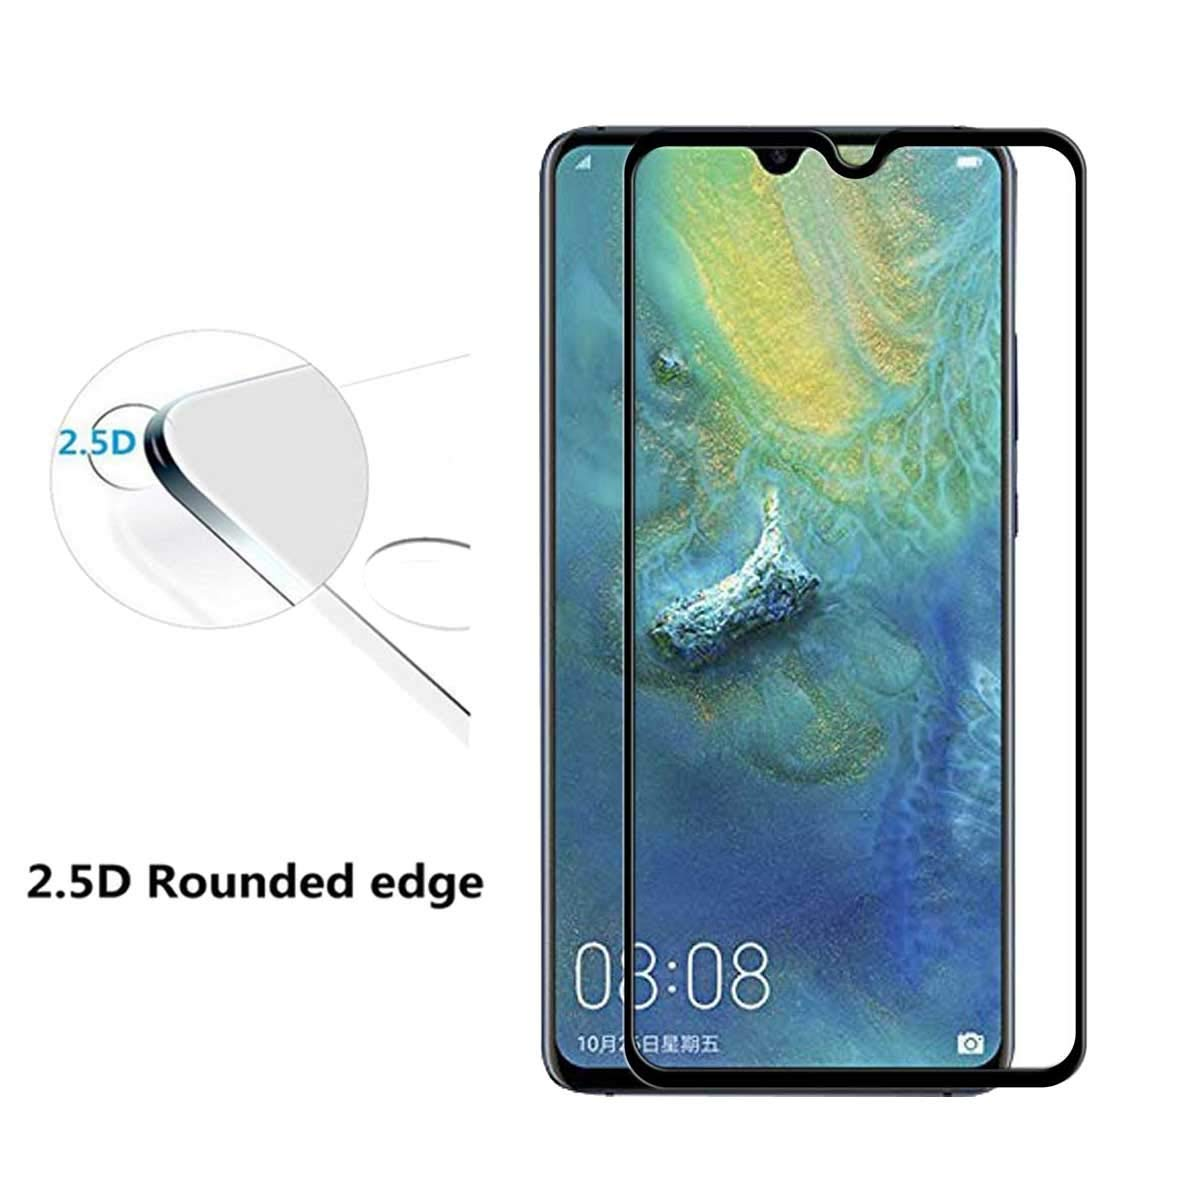 Full Cover Colorful Screen Protector Tempered Glass Film For Huawei Mate 8 9 10 P20 Lite PRO NOAV 3E 2 2S PLUS